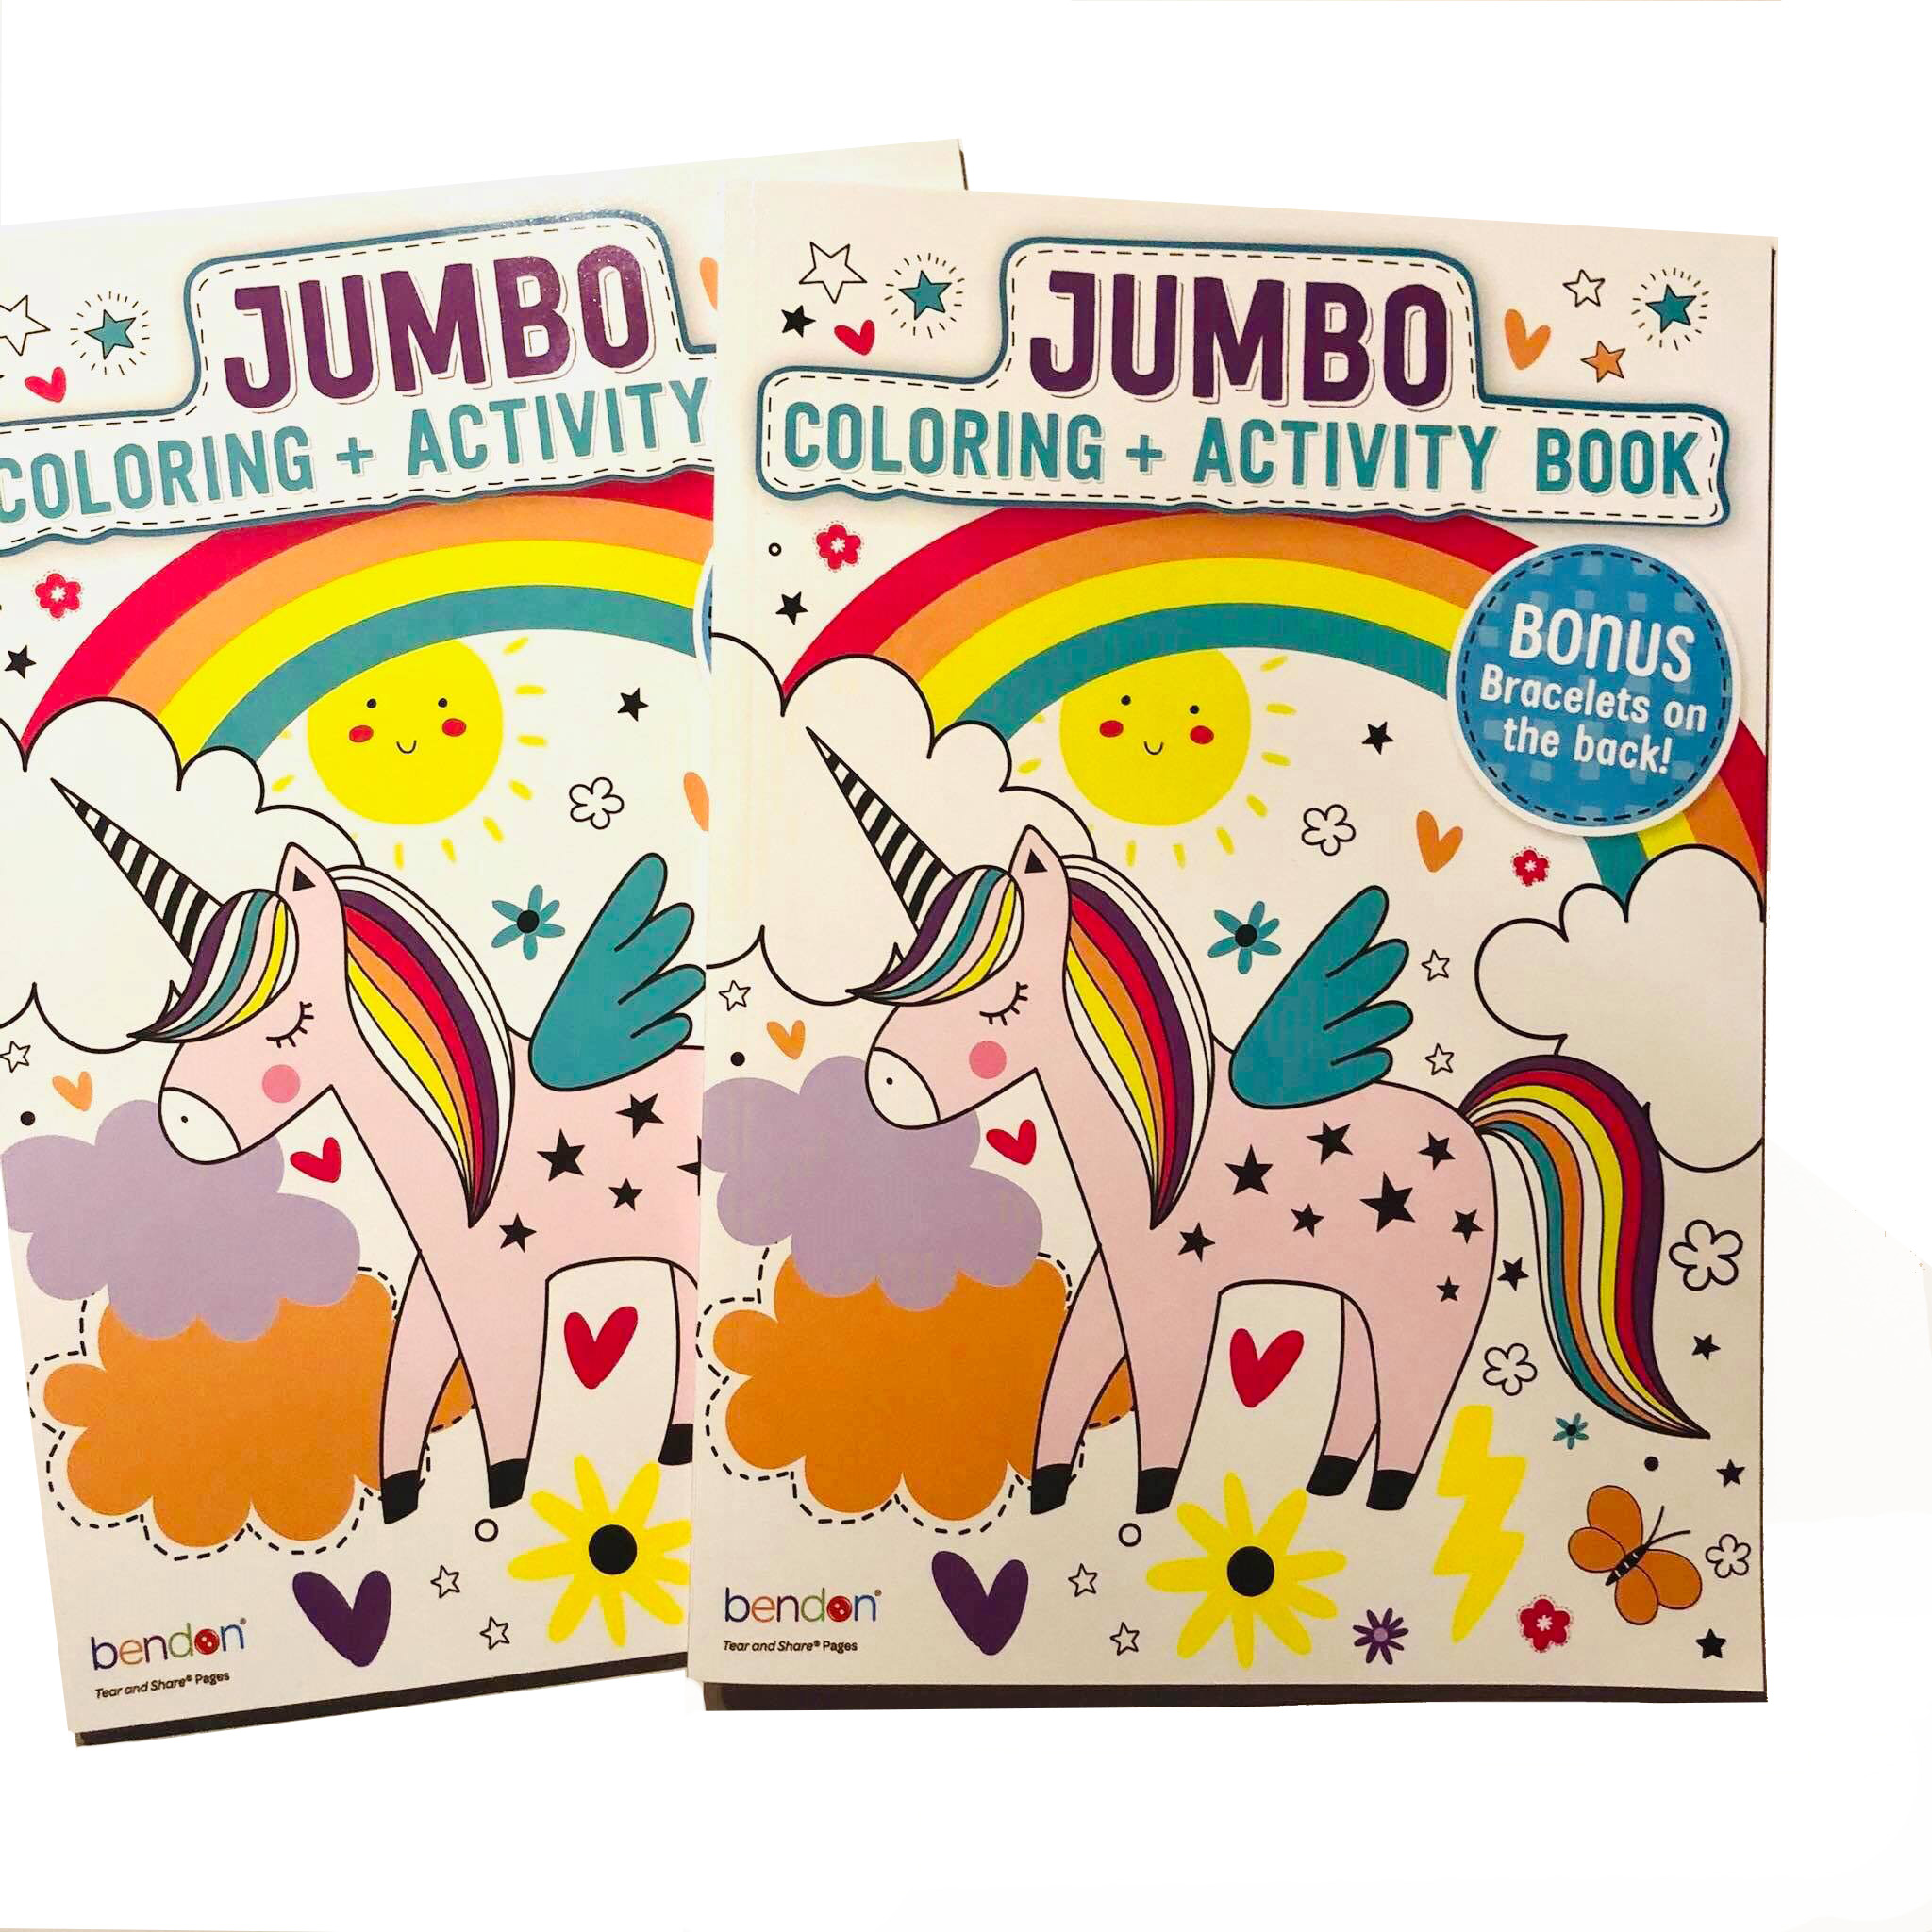 Jumbo Unicorn Coloring Activity Book 2 Coloring Books Coloring Books For Kidz